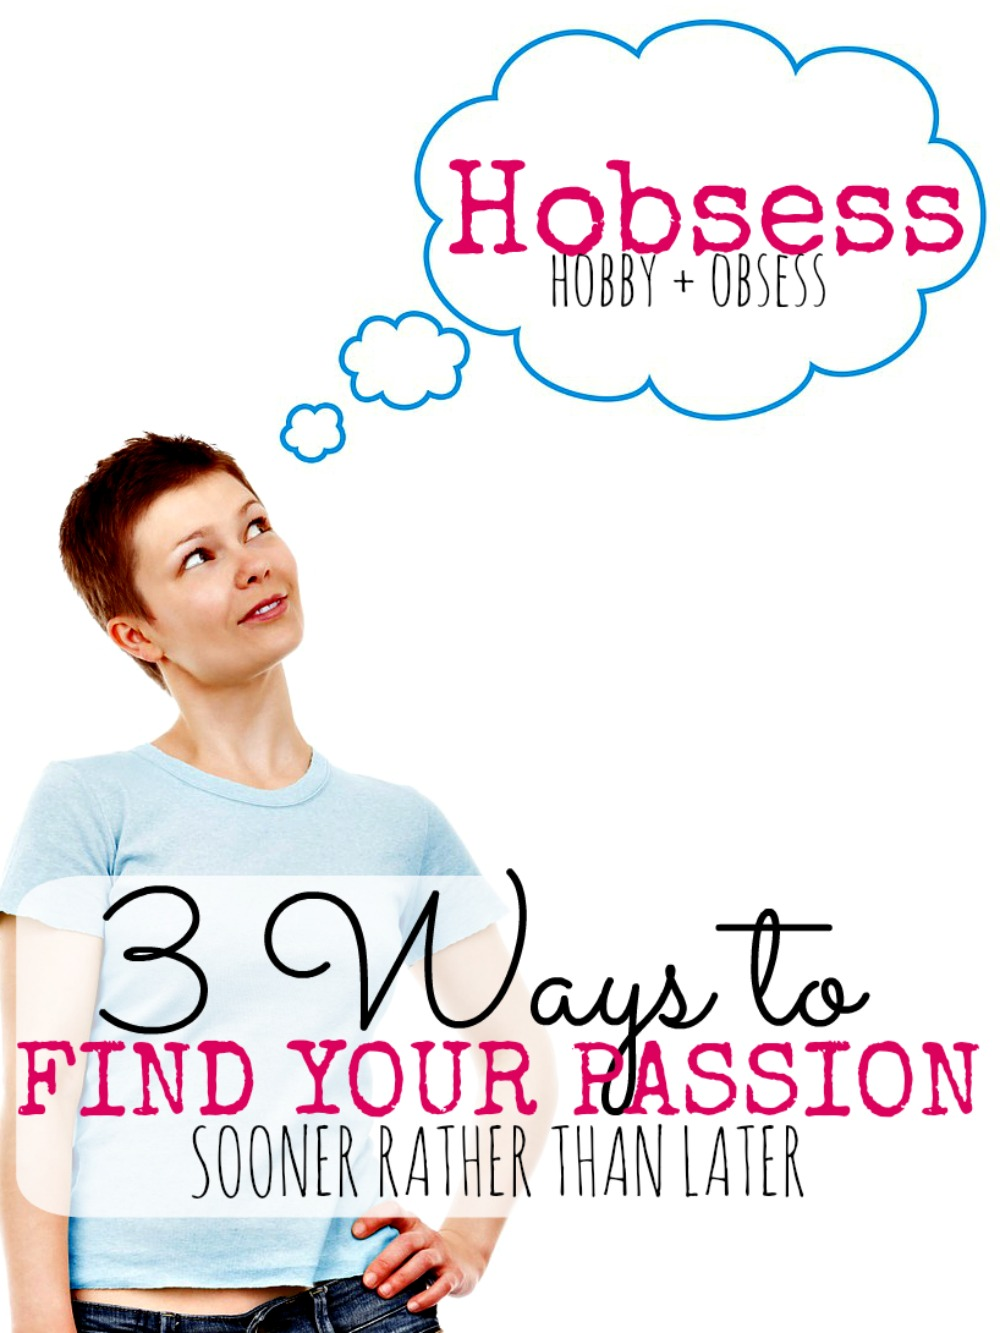 Discover how to find your passion. Today.